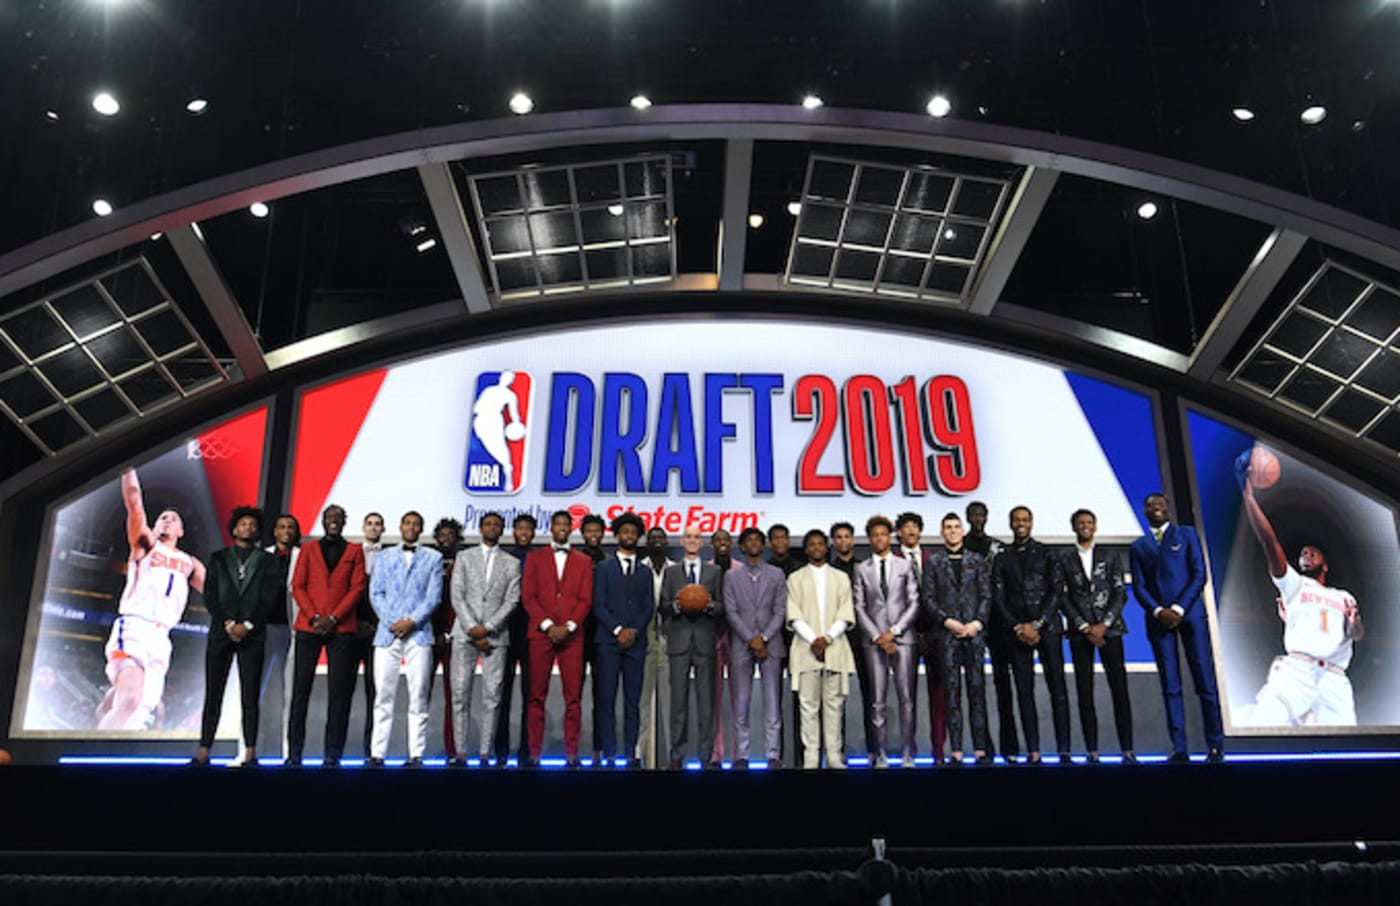 The 2019 NBA Draft prospects stand on stage